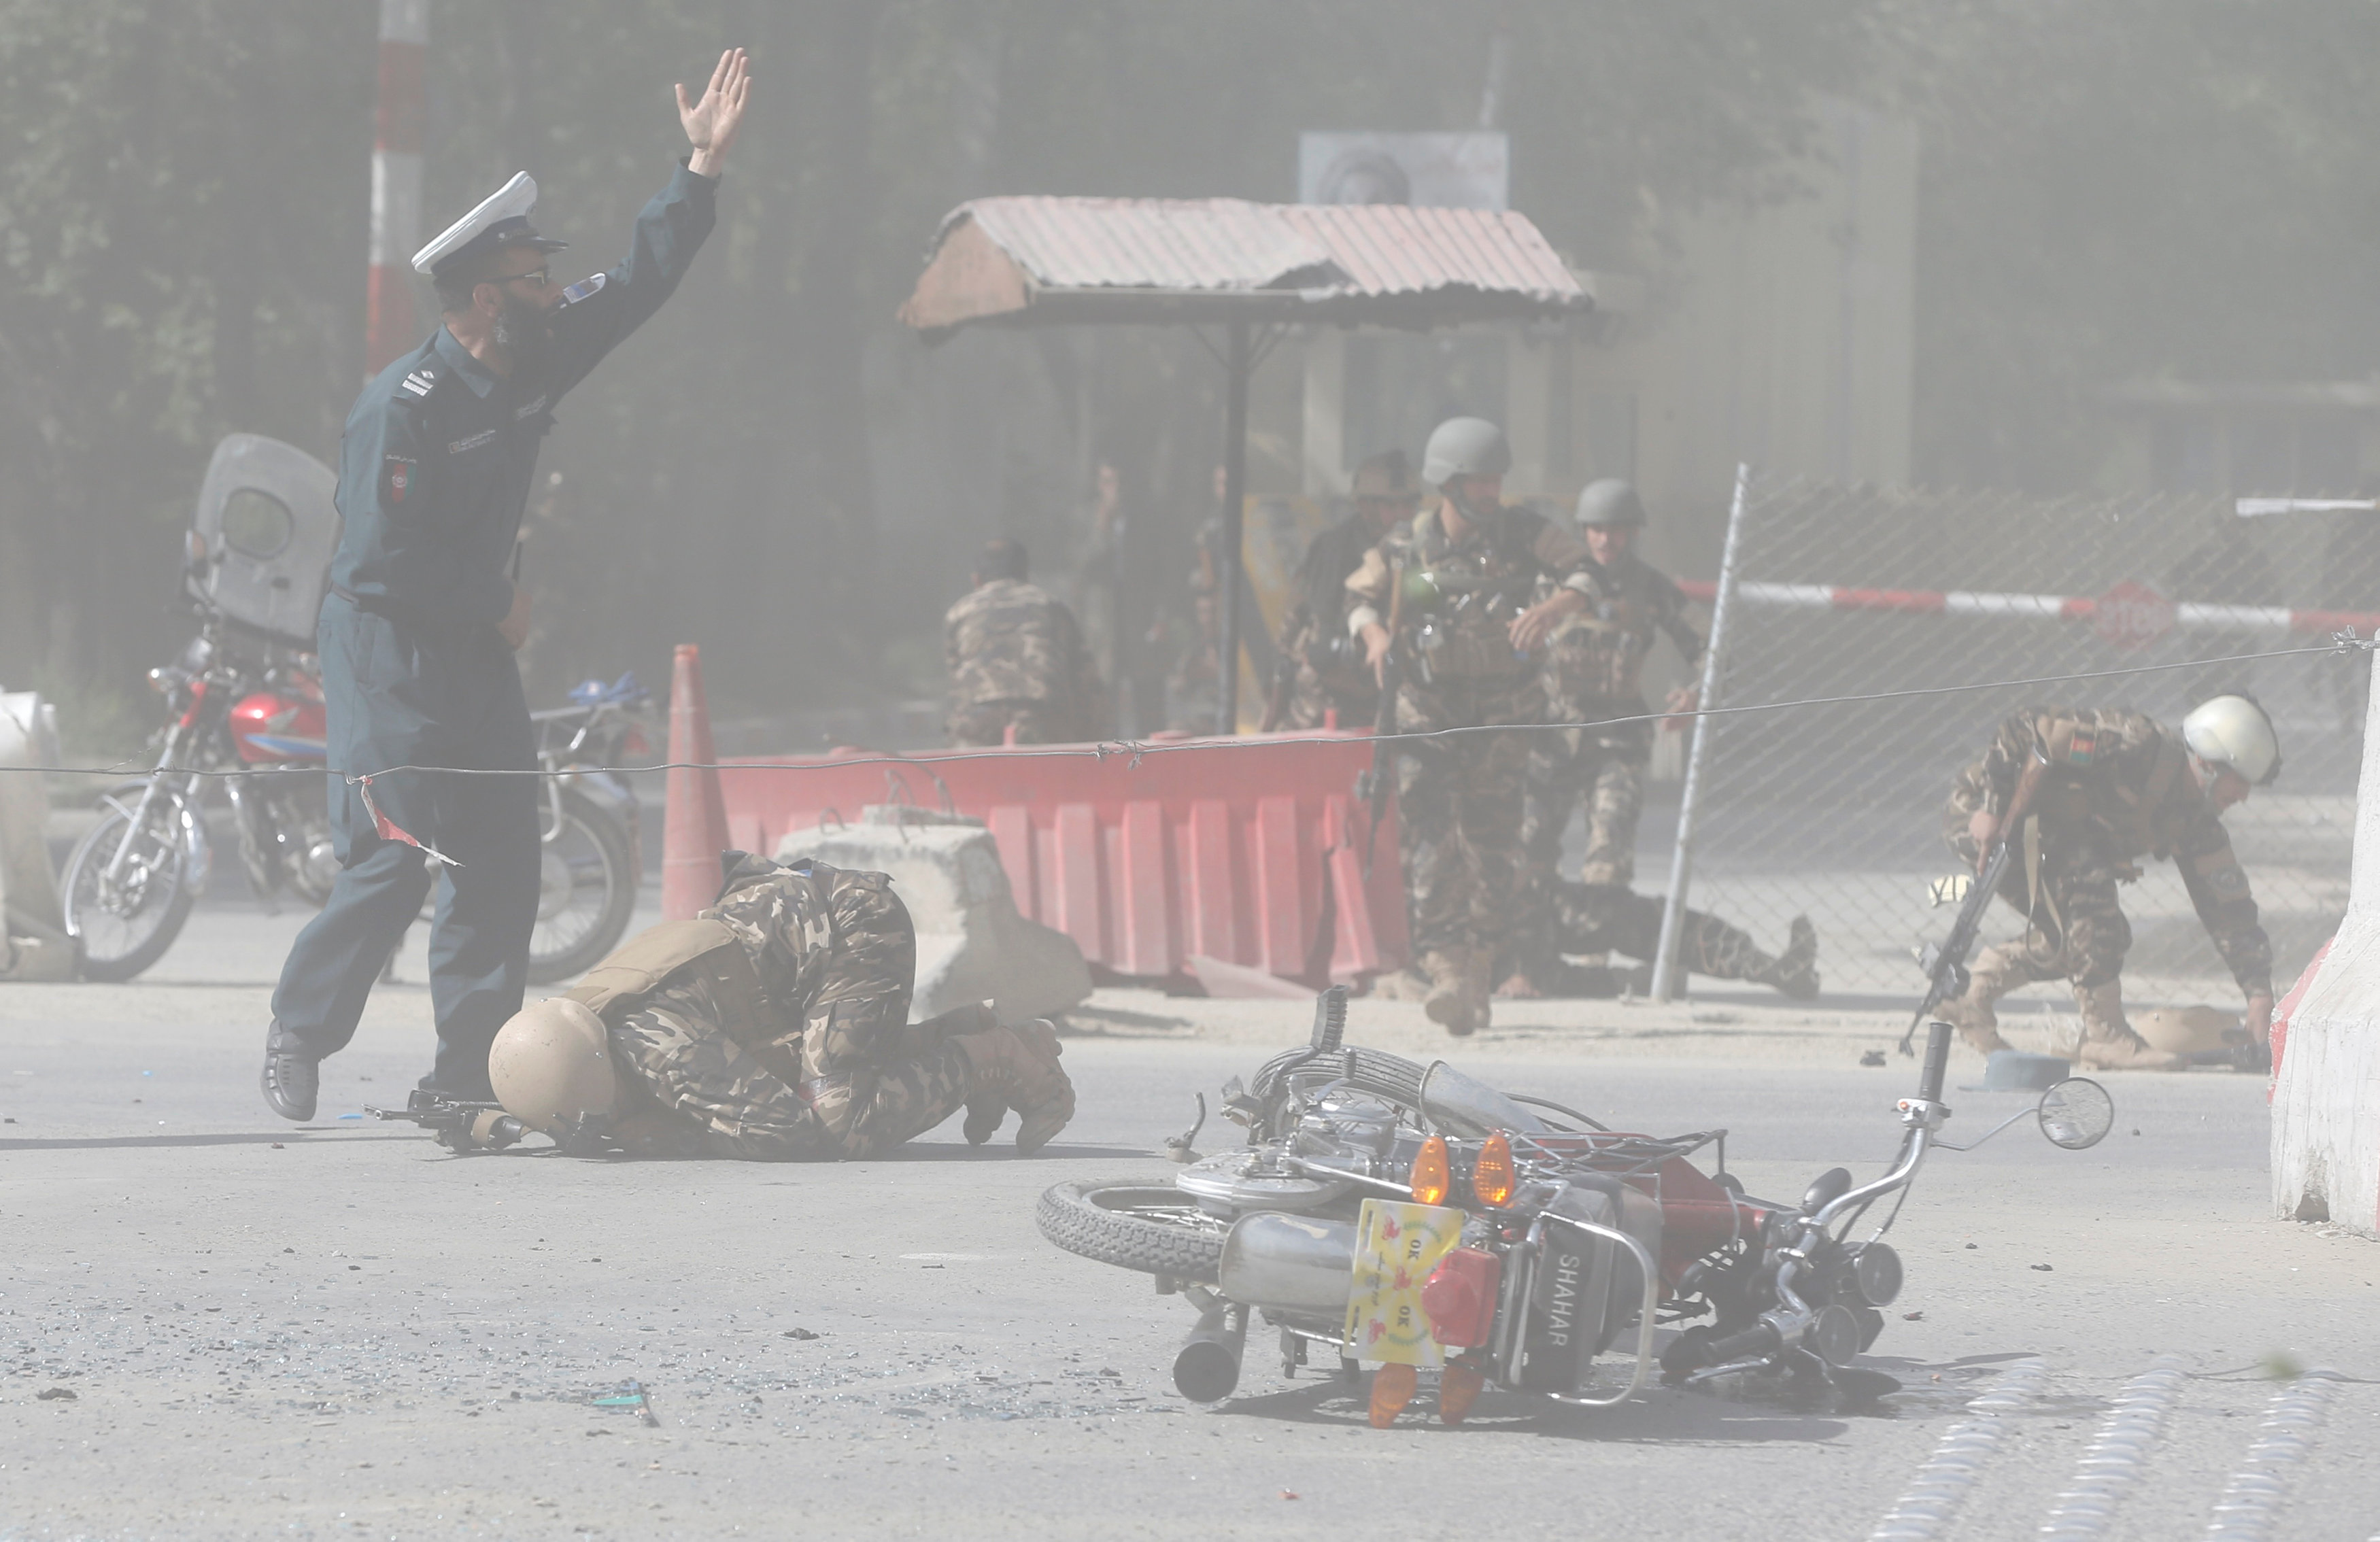 fghan security forces are seen at the site of a second blast in Kabul, Afghanistan April 30, 2018. REUTERS/Omar Sobhani